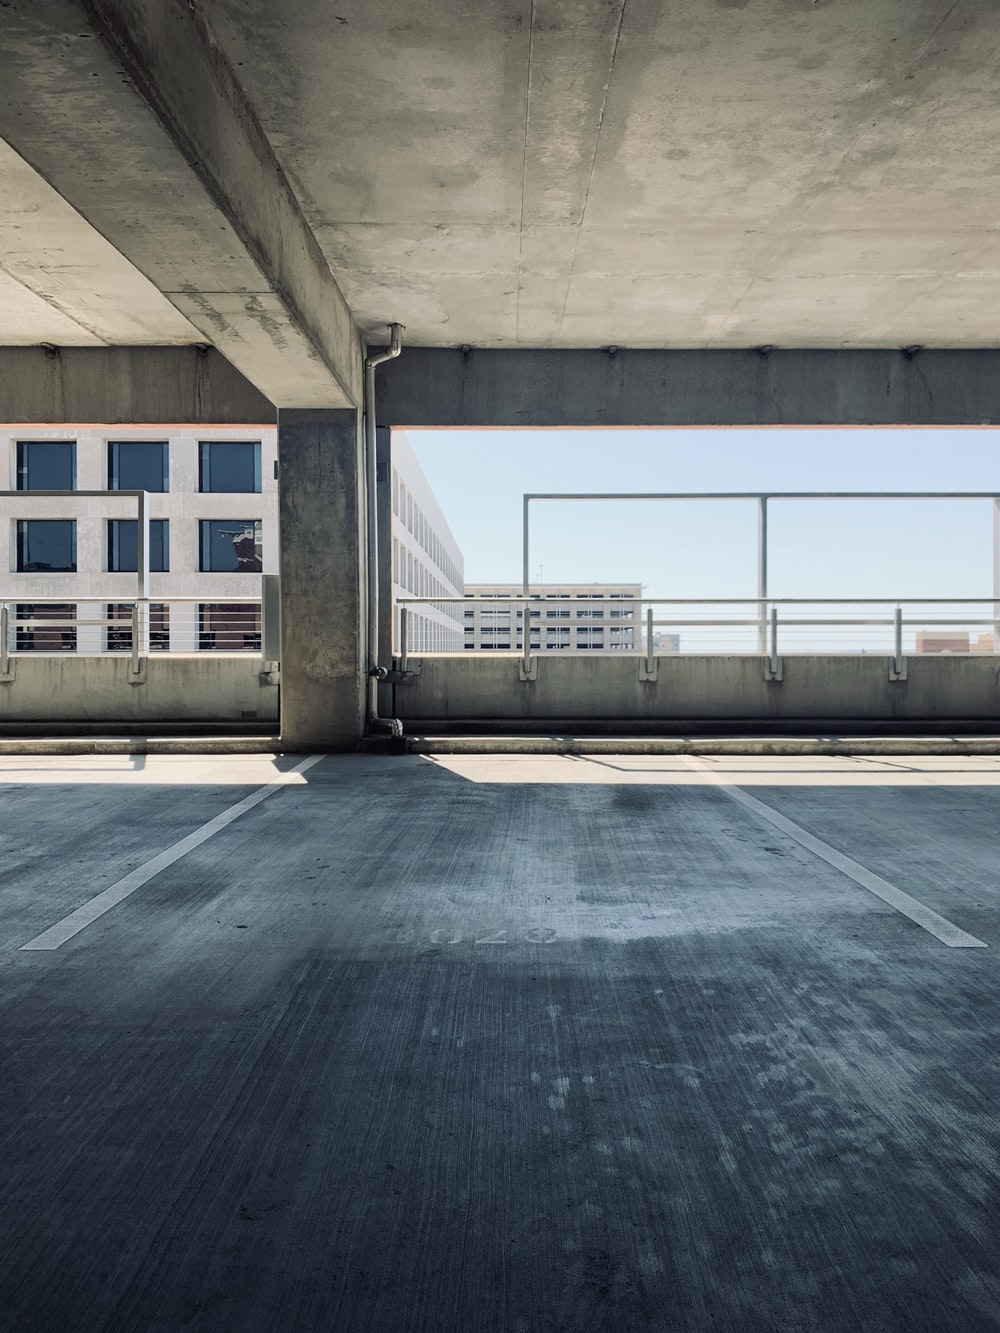 gray concrete parking area in building